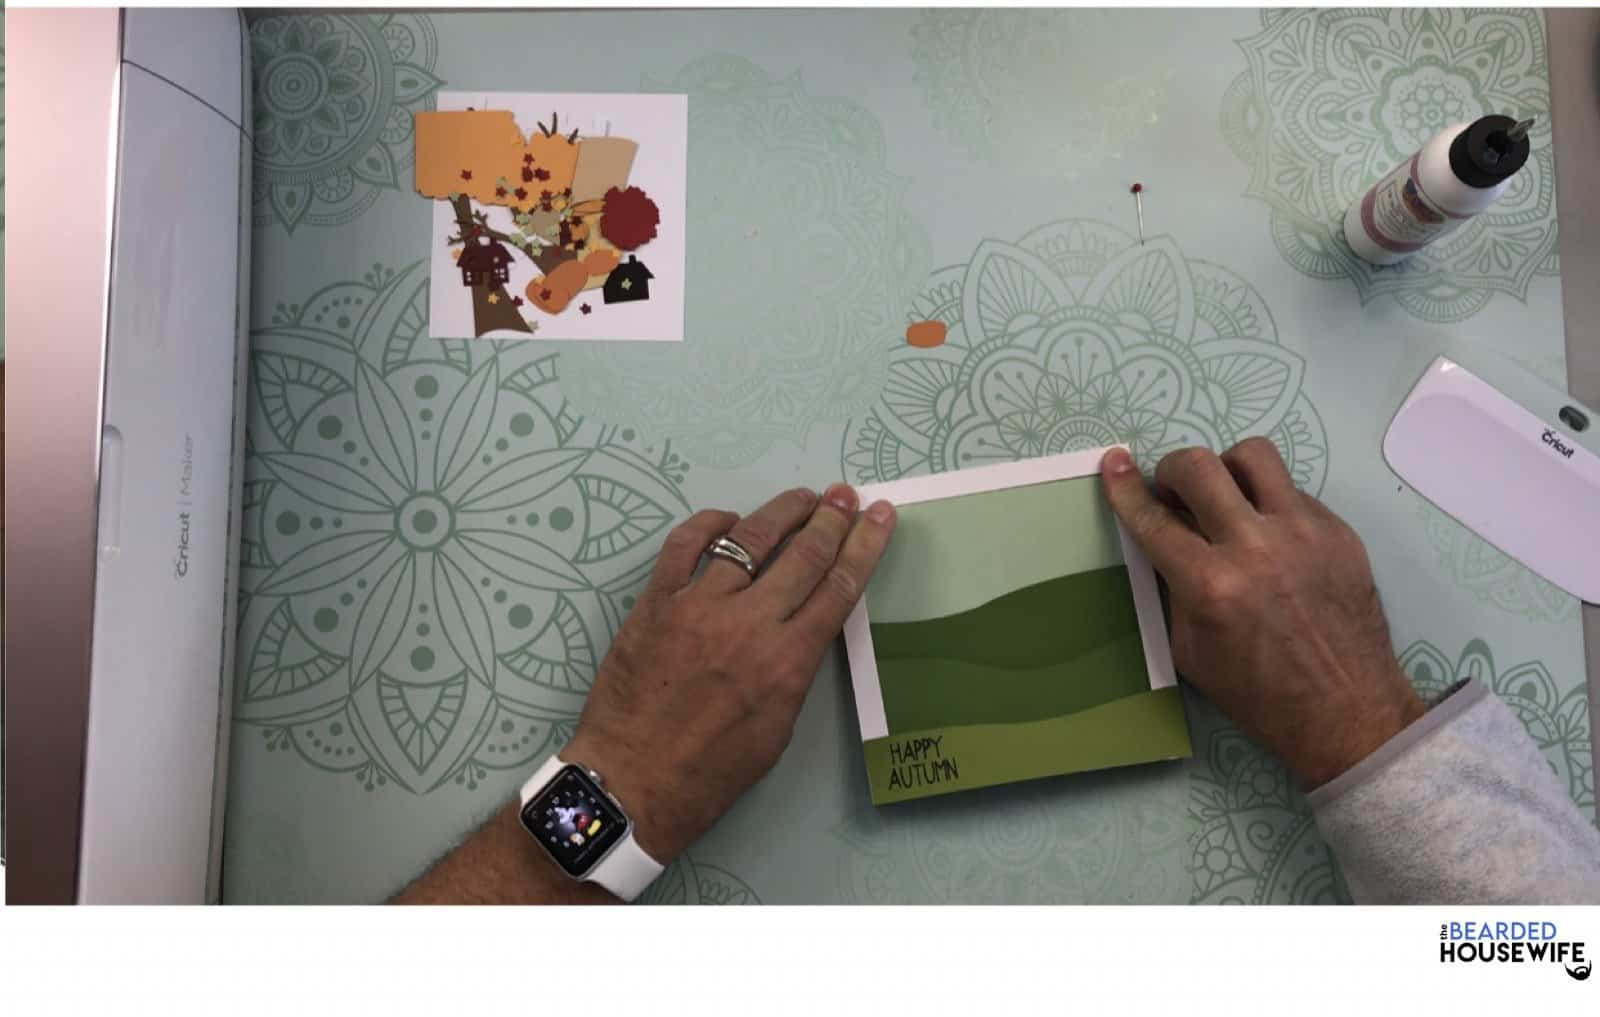 make sure it is flush with the card base and frame